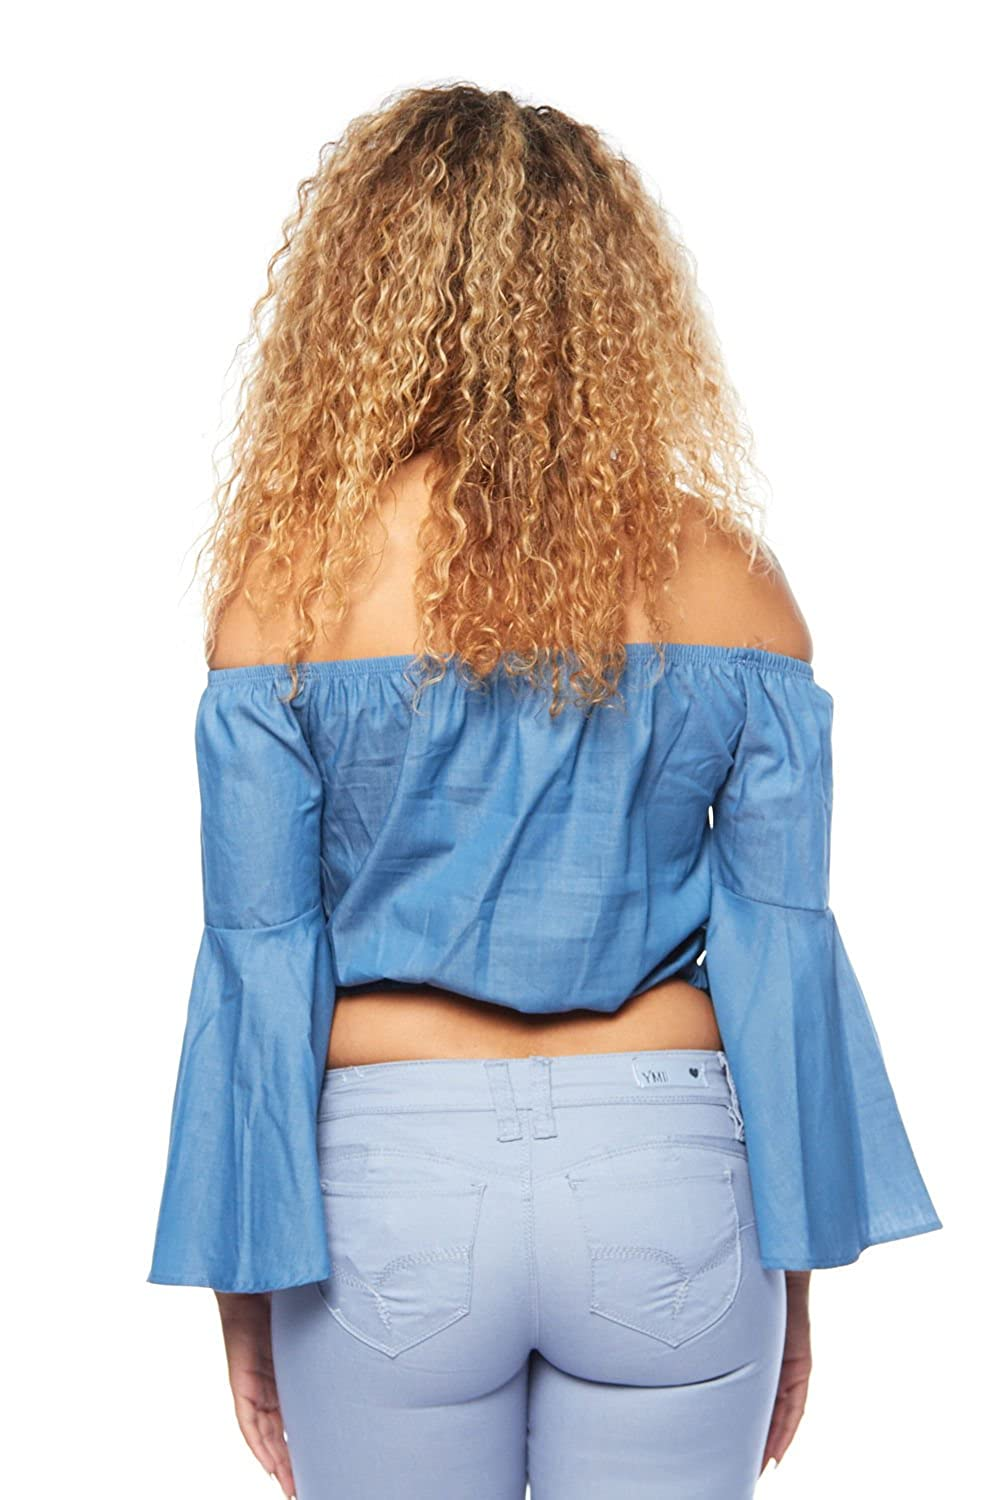 a81c4528fc9d56 GENx Womens Off Shoulder Denim Bell Sleeves Crop Top Blouse MT60270 at  Amazon Women s Clothing store